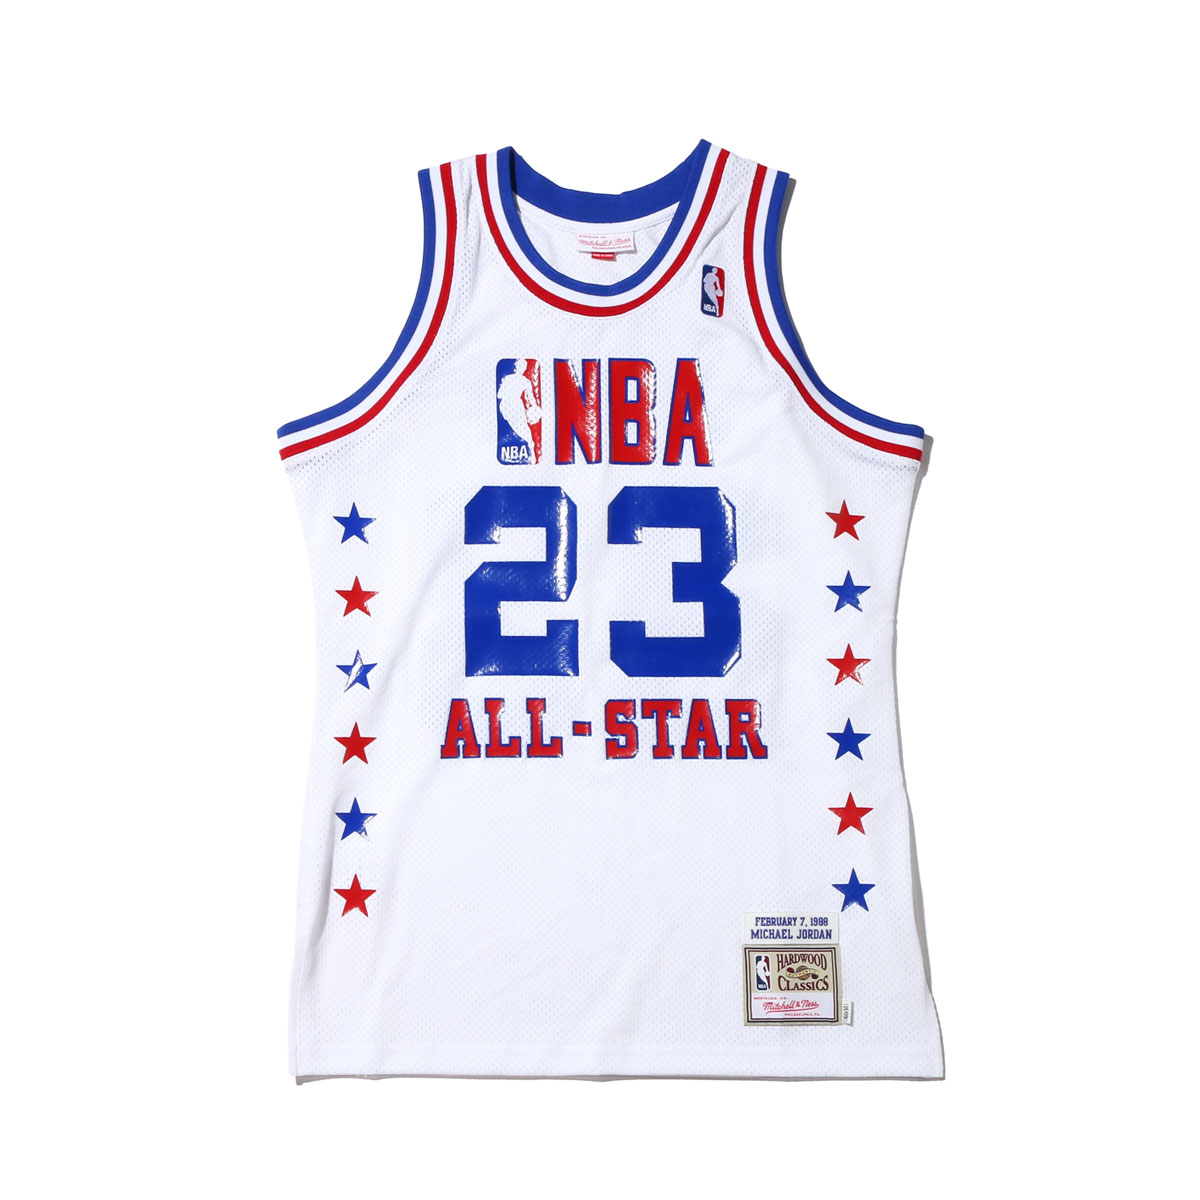 new styles 7ac29 ad806 Mitchell & Ness 1988 ASG EAST JERSEY #23 MICHAEL JORDAN (Mitchel andness  authentic basket jersey tops) (WHITE)